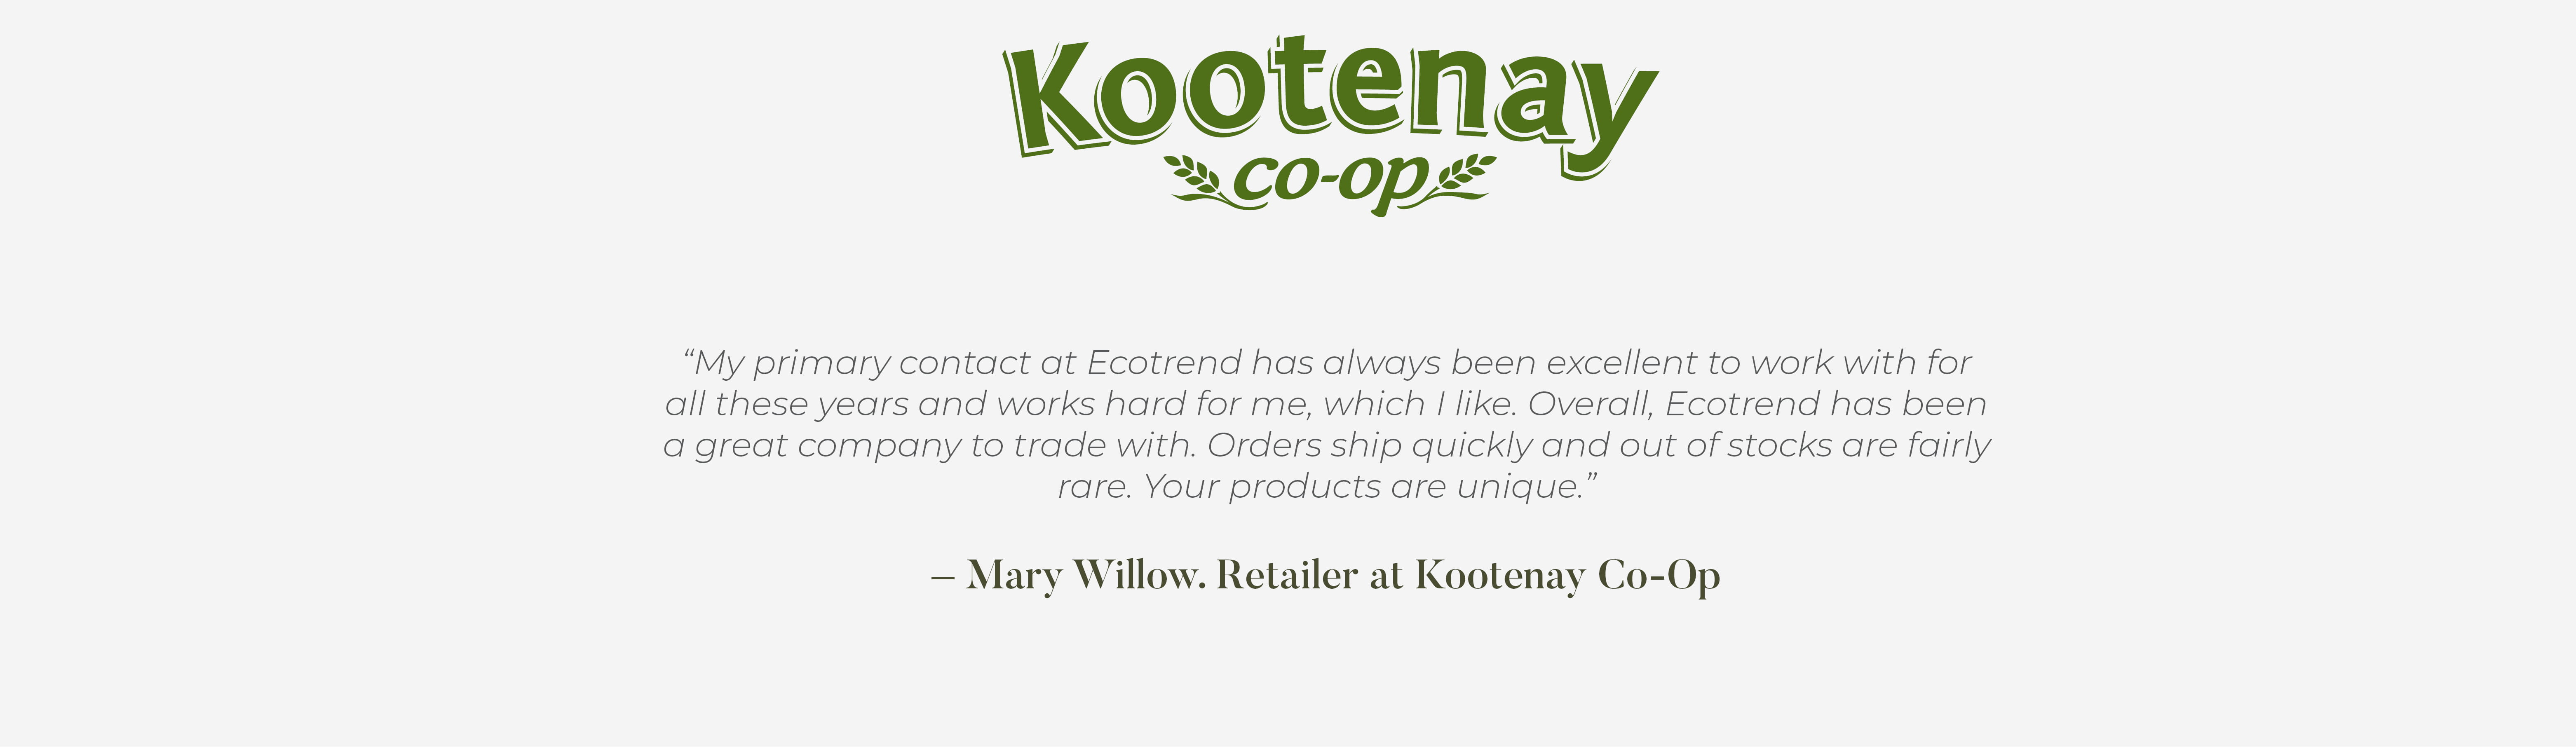 Mary Willow Retailer at Kootenay Coop Testimonial